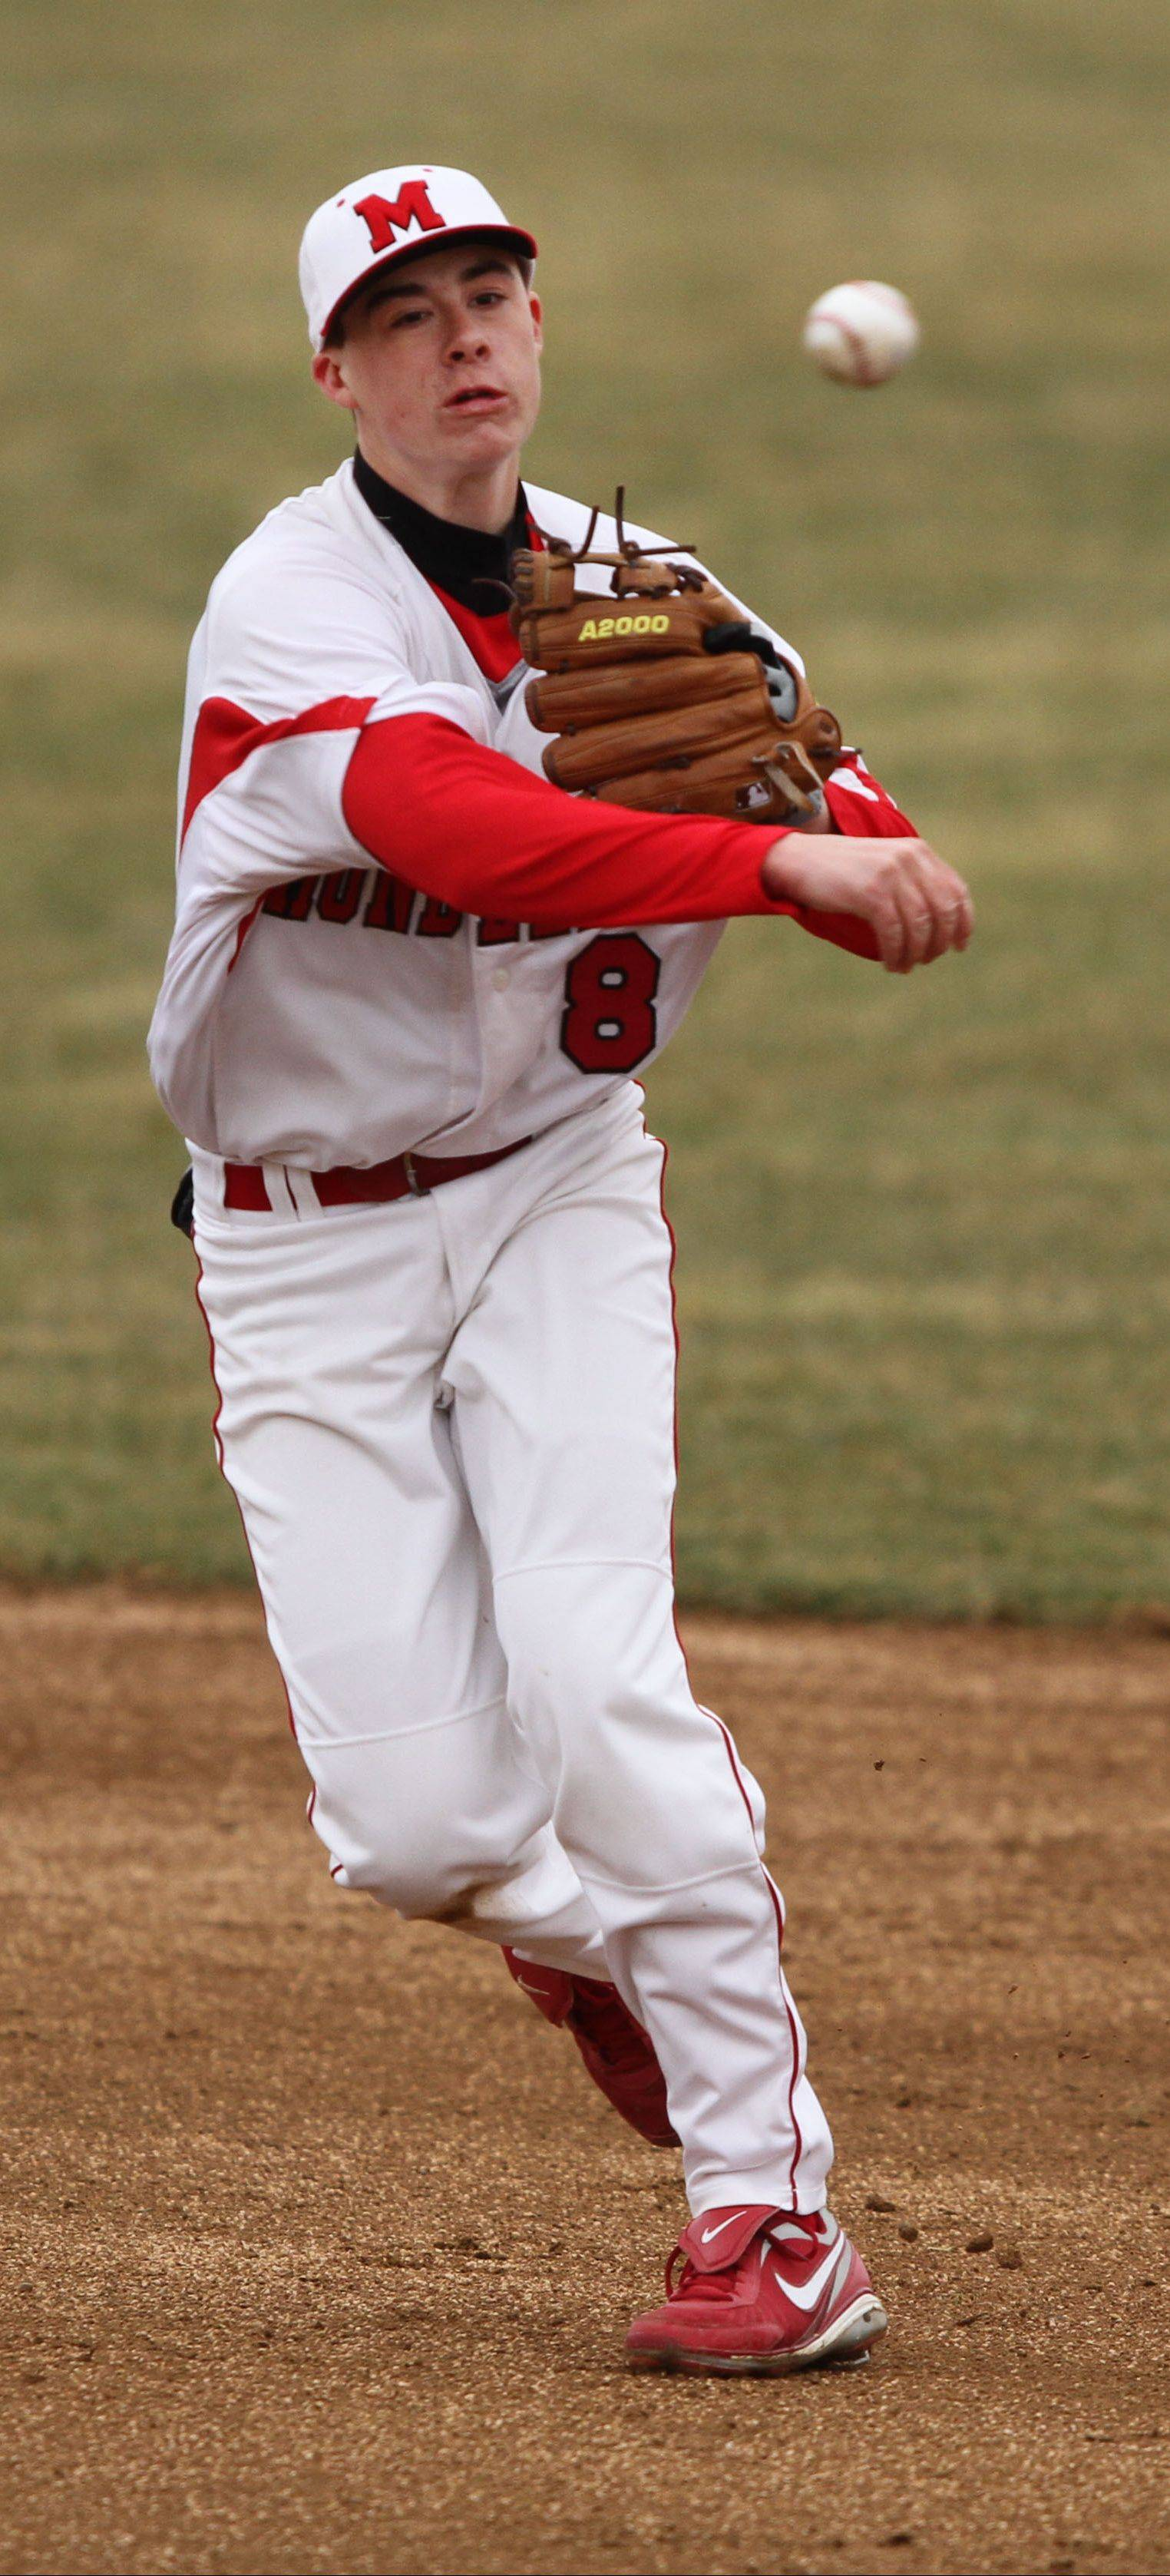 Mundelein's Derek Parola throws to first Tuesday against Lake Zurich at Mundelein.